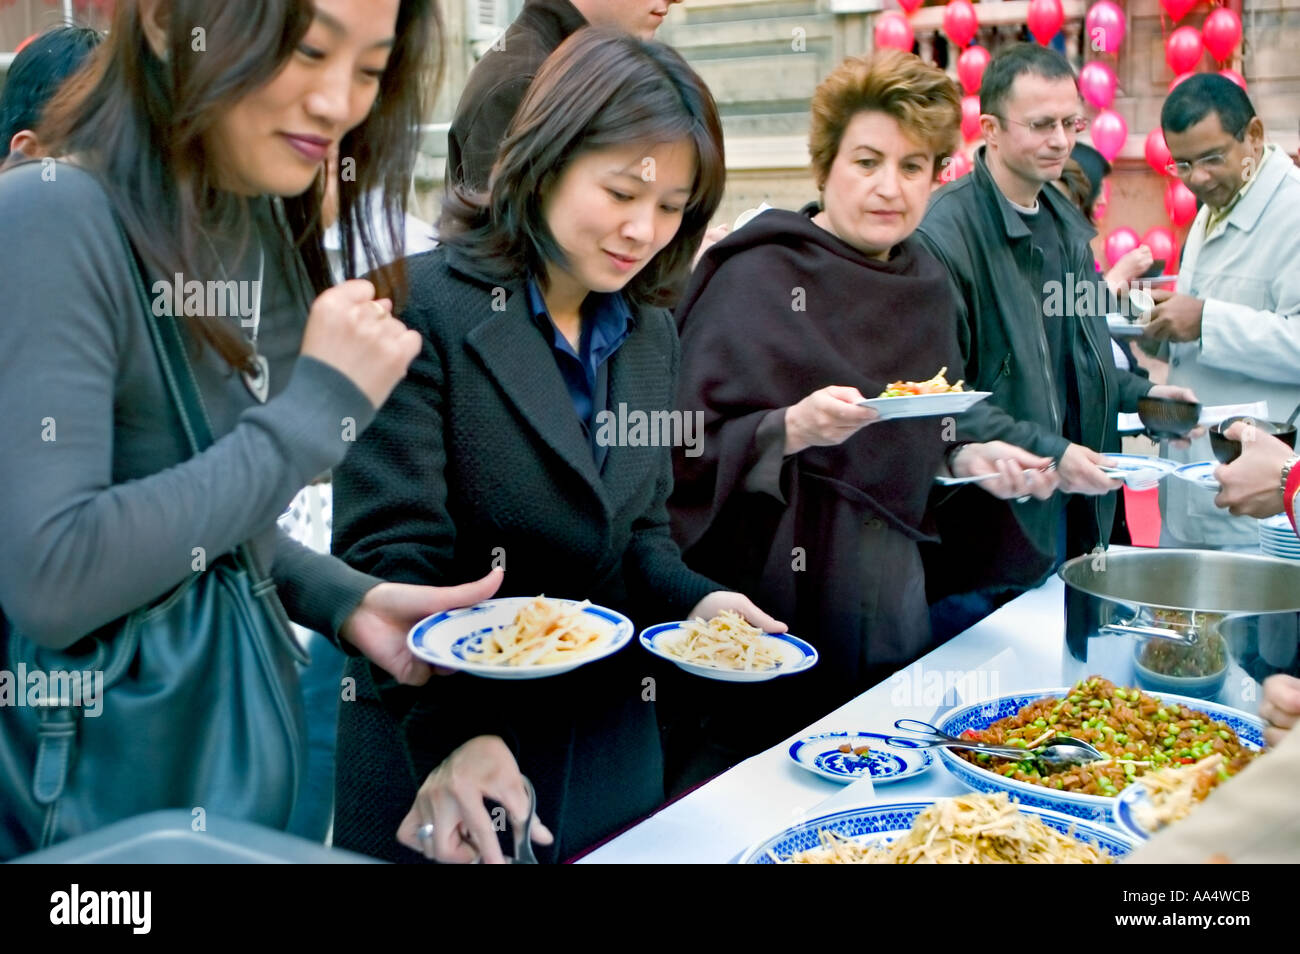 Multicultural, Paris France, Asian Women Serving Themselves Meals Chinese Gastronomy 'Chinese food' Buffet Table - Stock Image